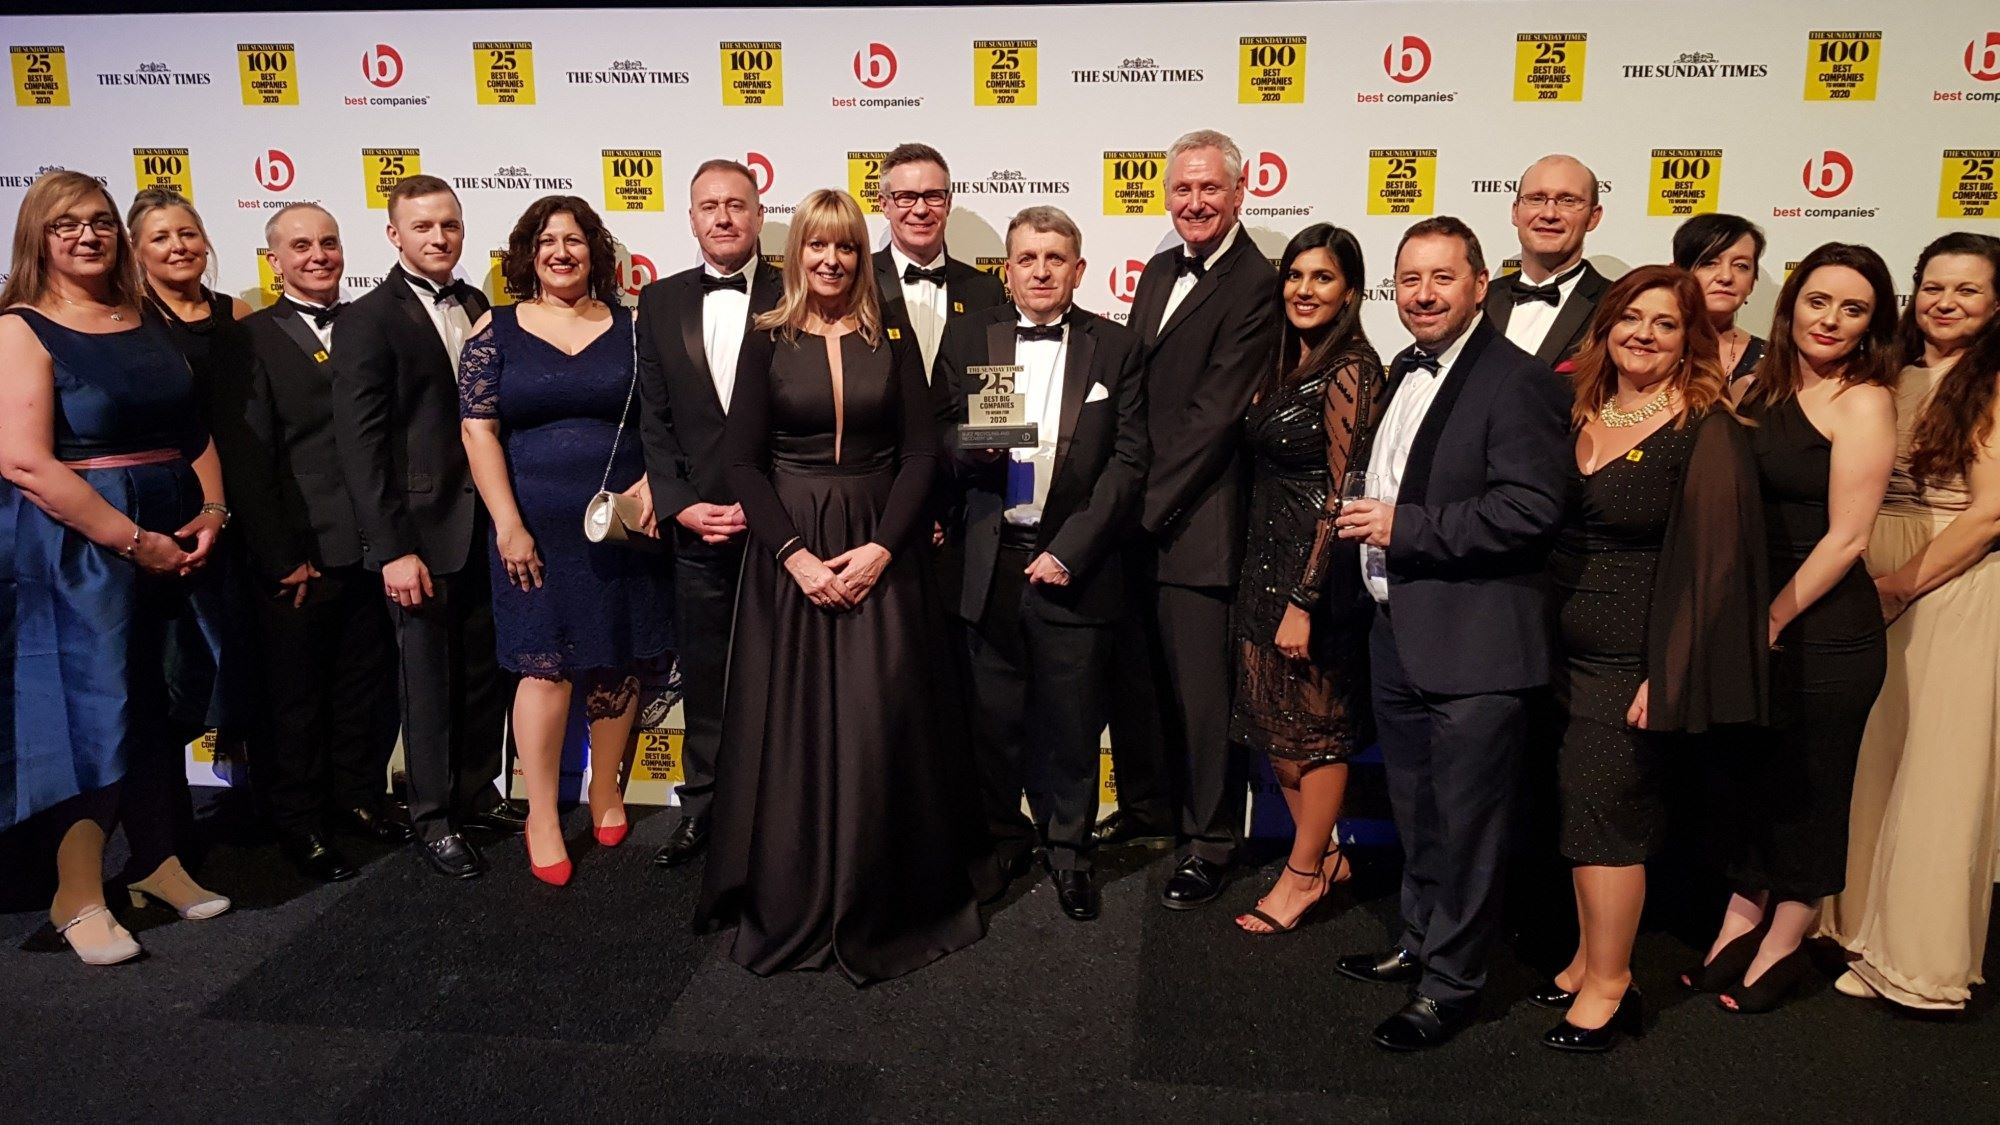 The Sunday Times 25 Best companies group 2020